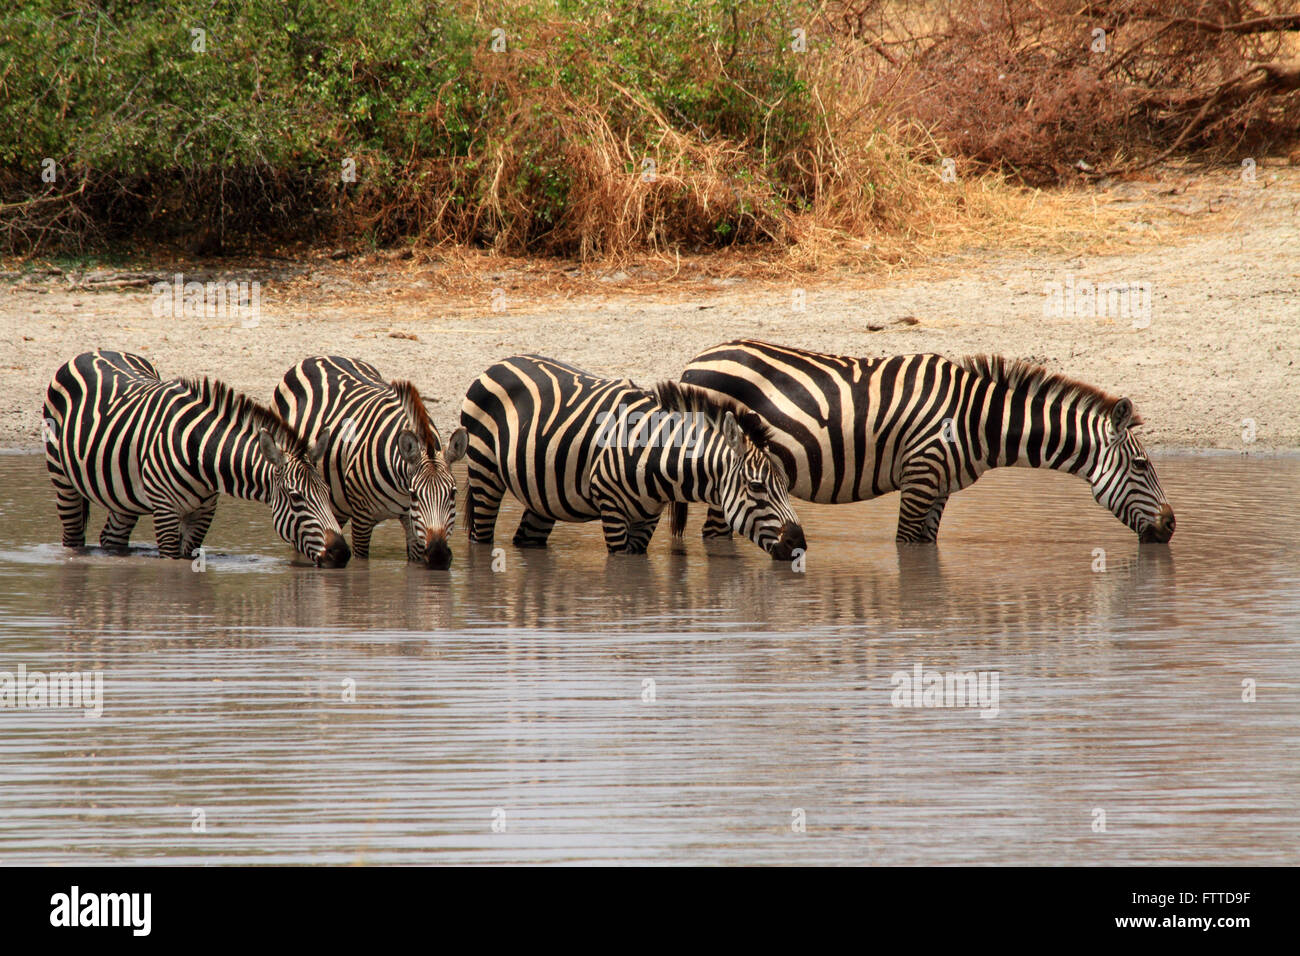 Four Zebras (Equus quagga) stand in a watering hole and drink water - Stock Image